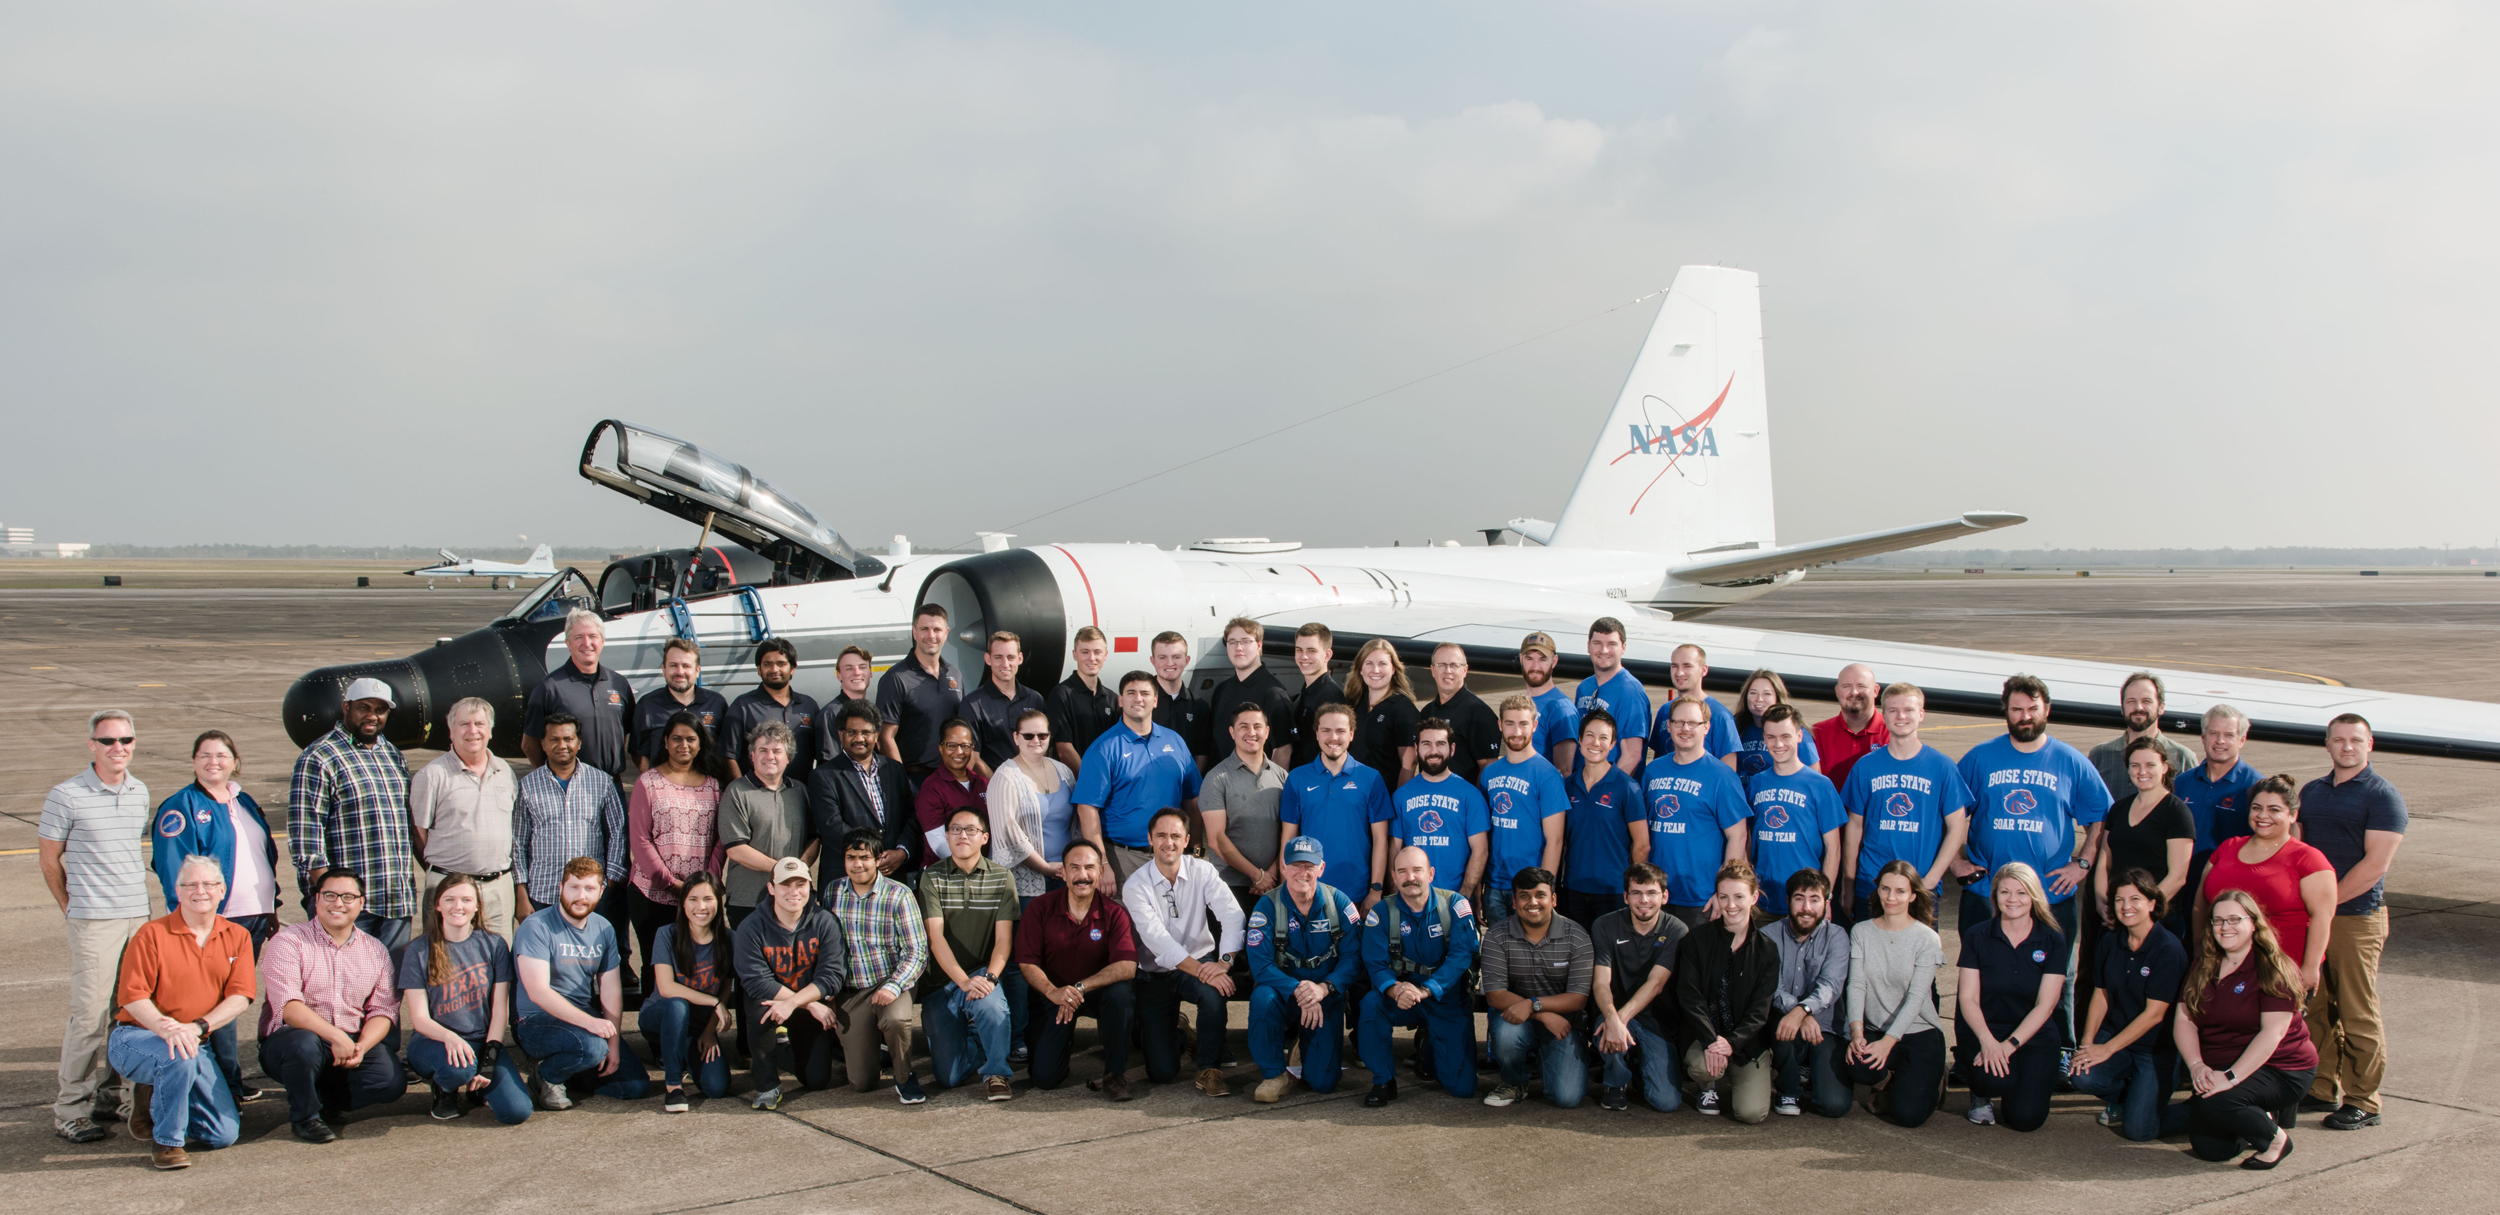 Sam with other students and a WB-57 at  Ellington Airport at JSC.